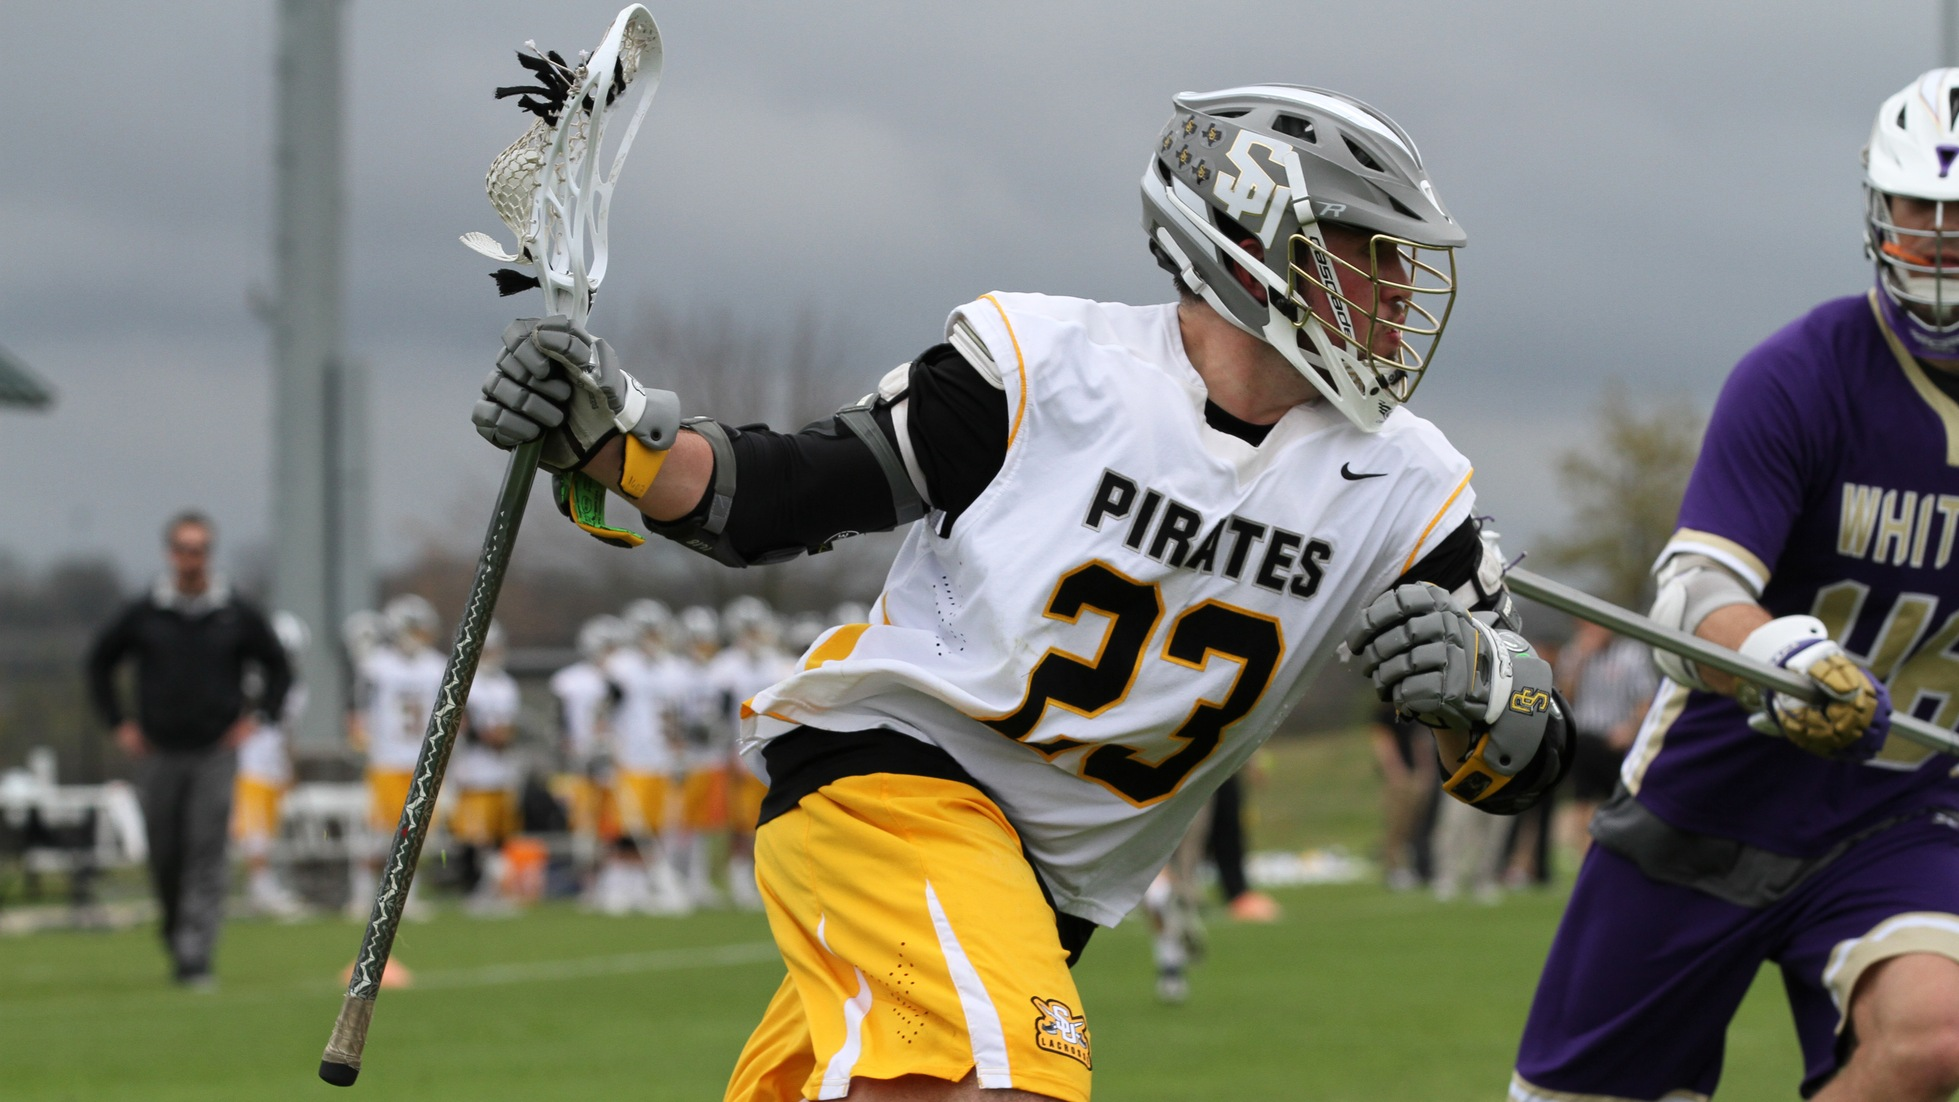 Knight-Turcan's record-setting performance lifts Pirates to 25-7 win